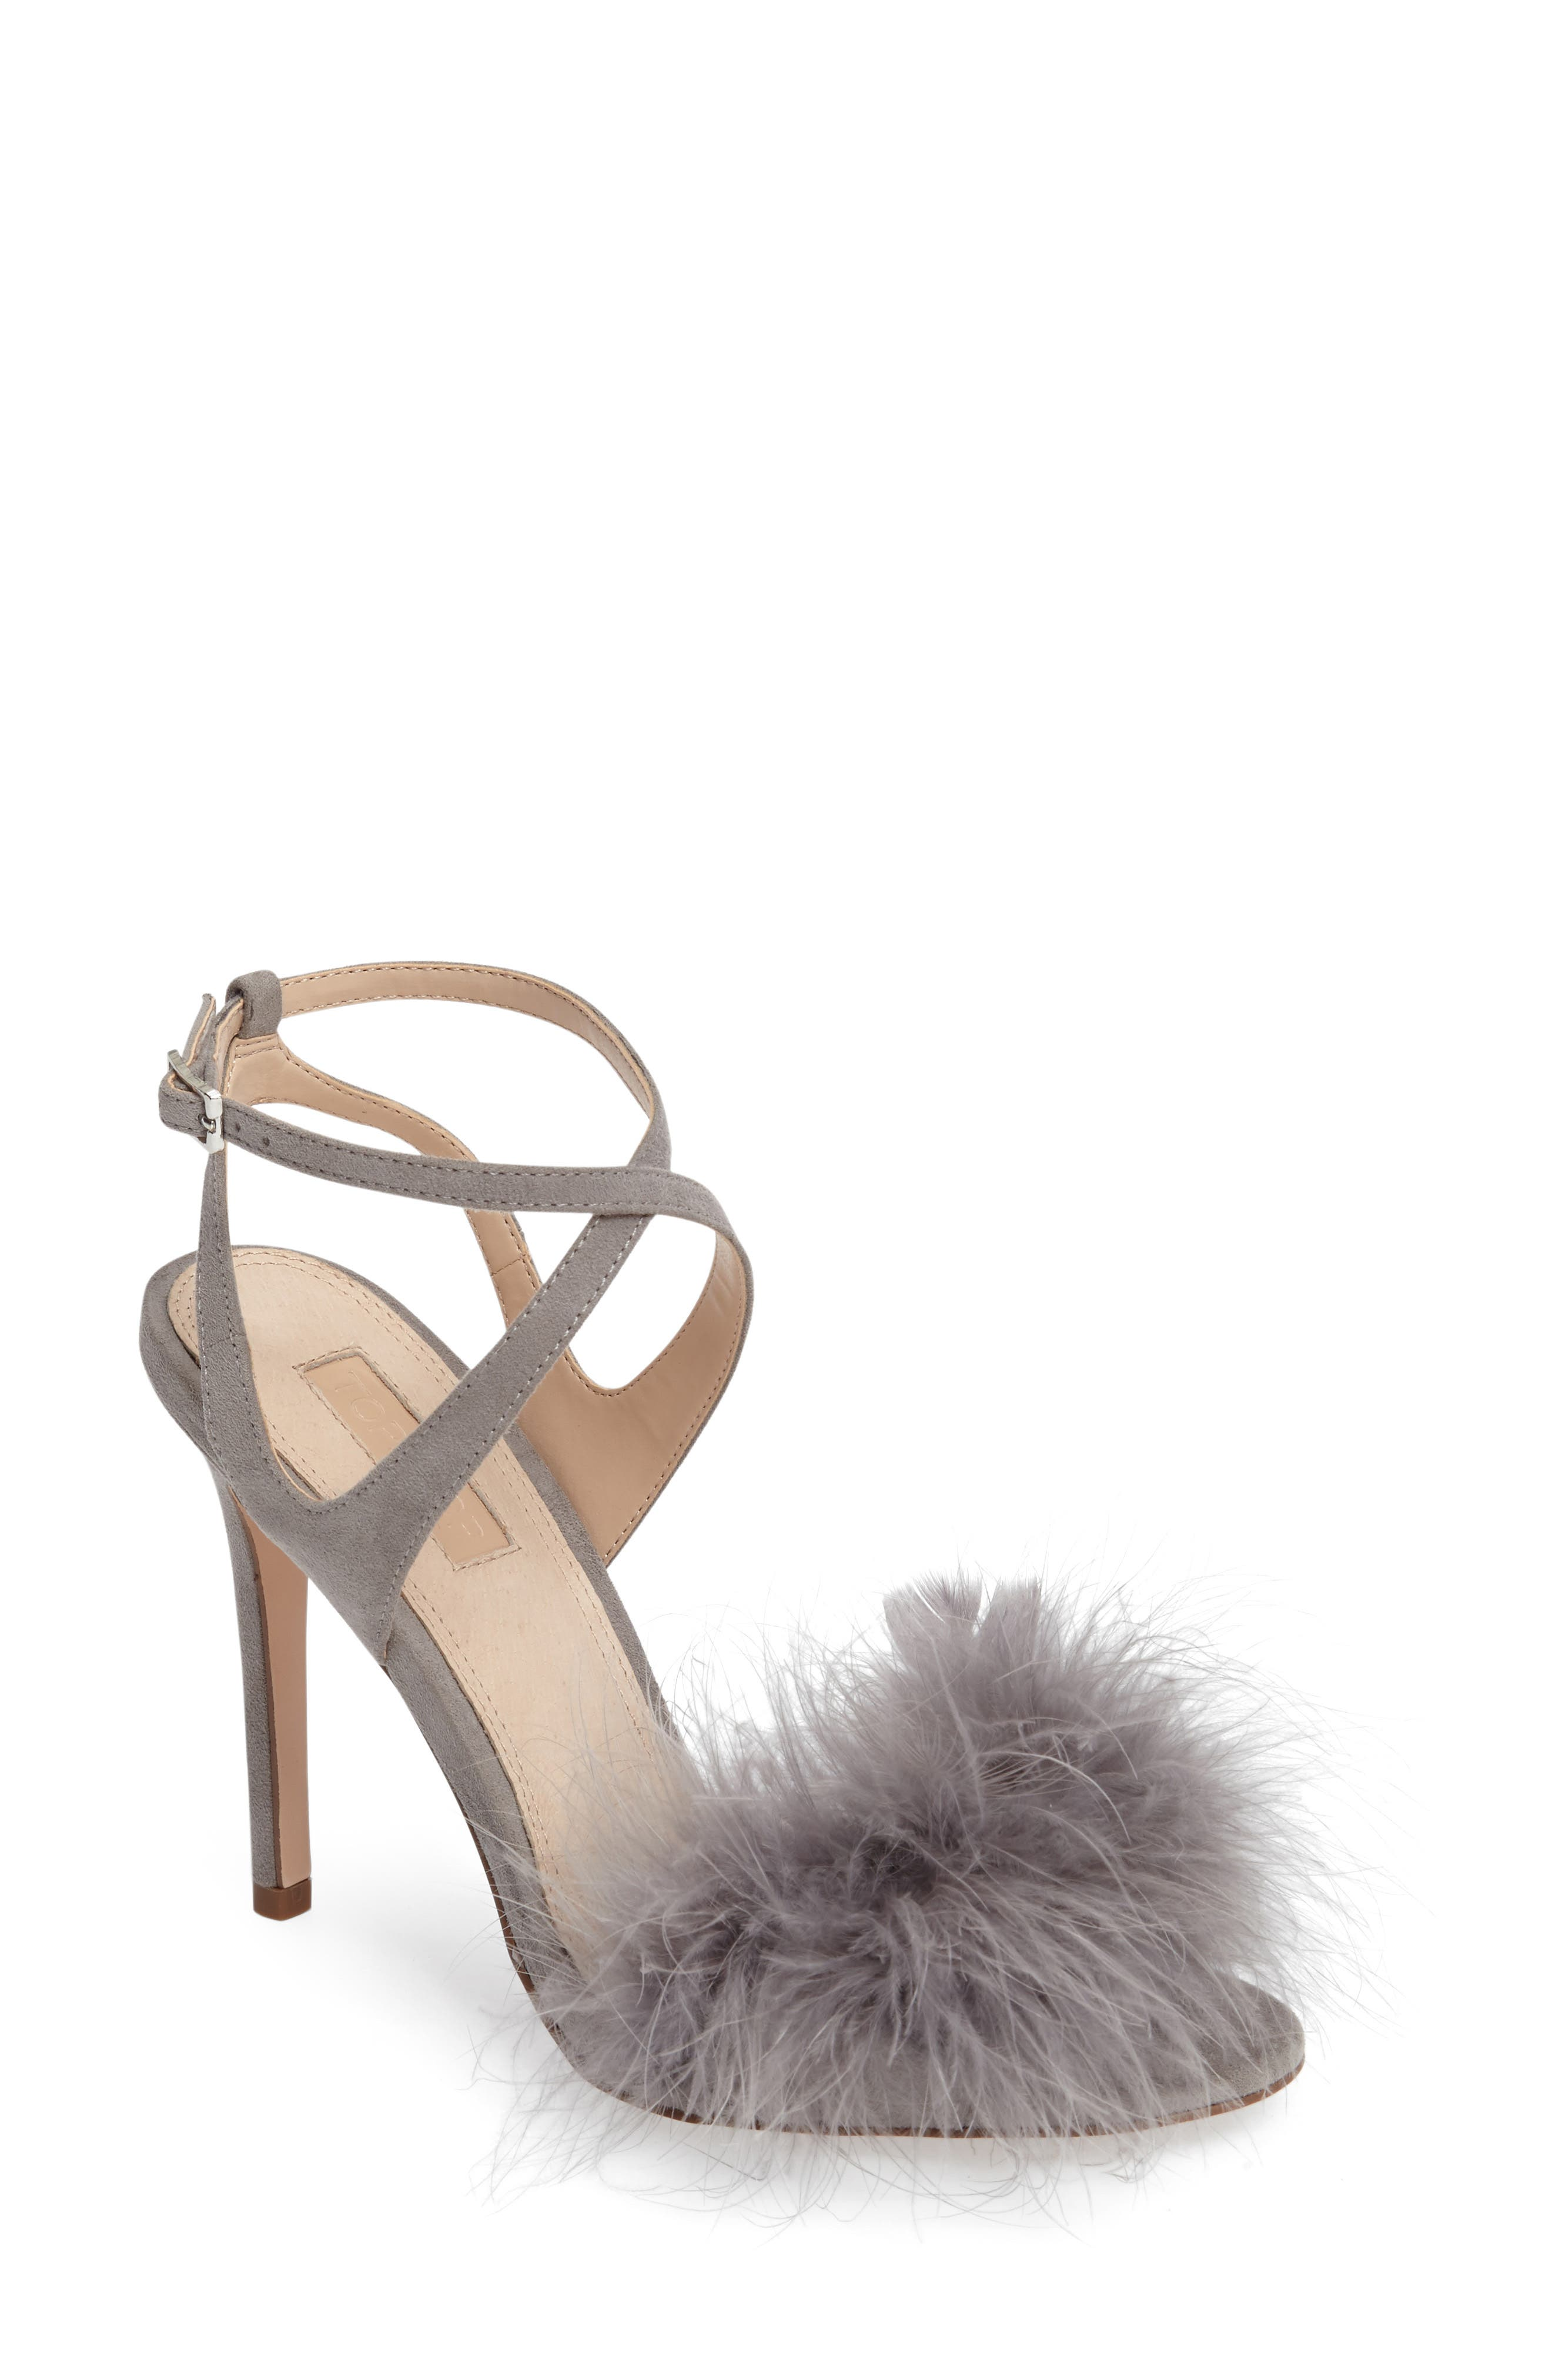 Reine Feathered Sandal,                             Main thumbnail 1, color,                             Grey